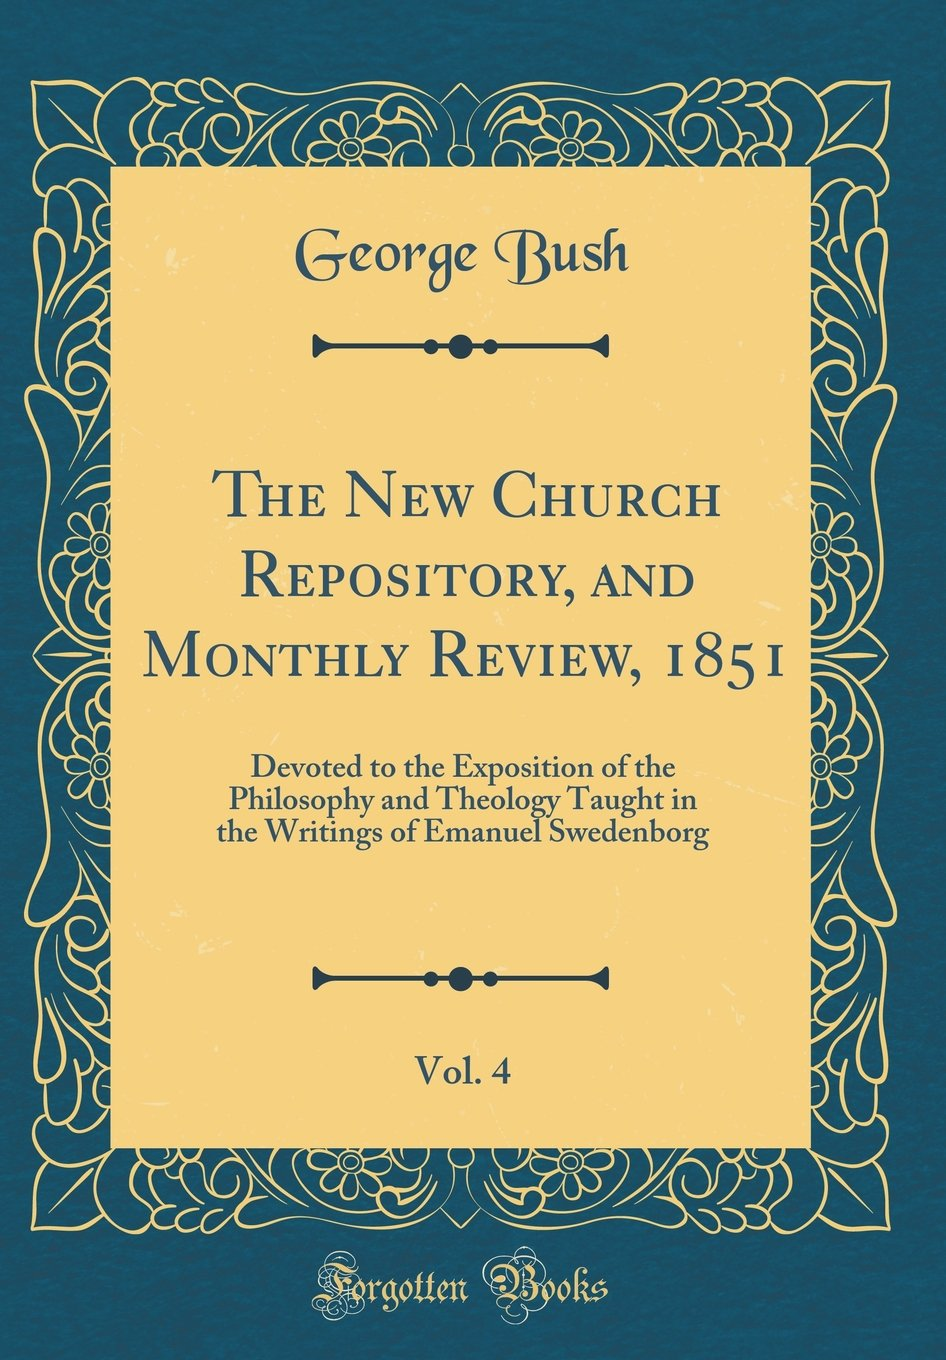 The New Church Repository, and Monthly Review, 1851, Vol. 4: Devoted to the Exposition of the Philosophy and Theology Taught in the Writings of Emanuel Swedenborg (Classic Reprint) PDF